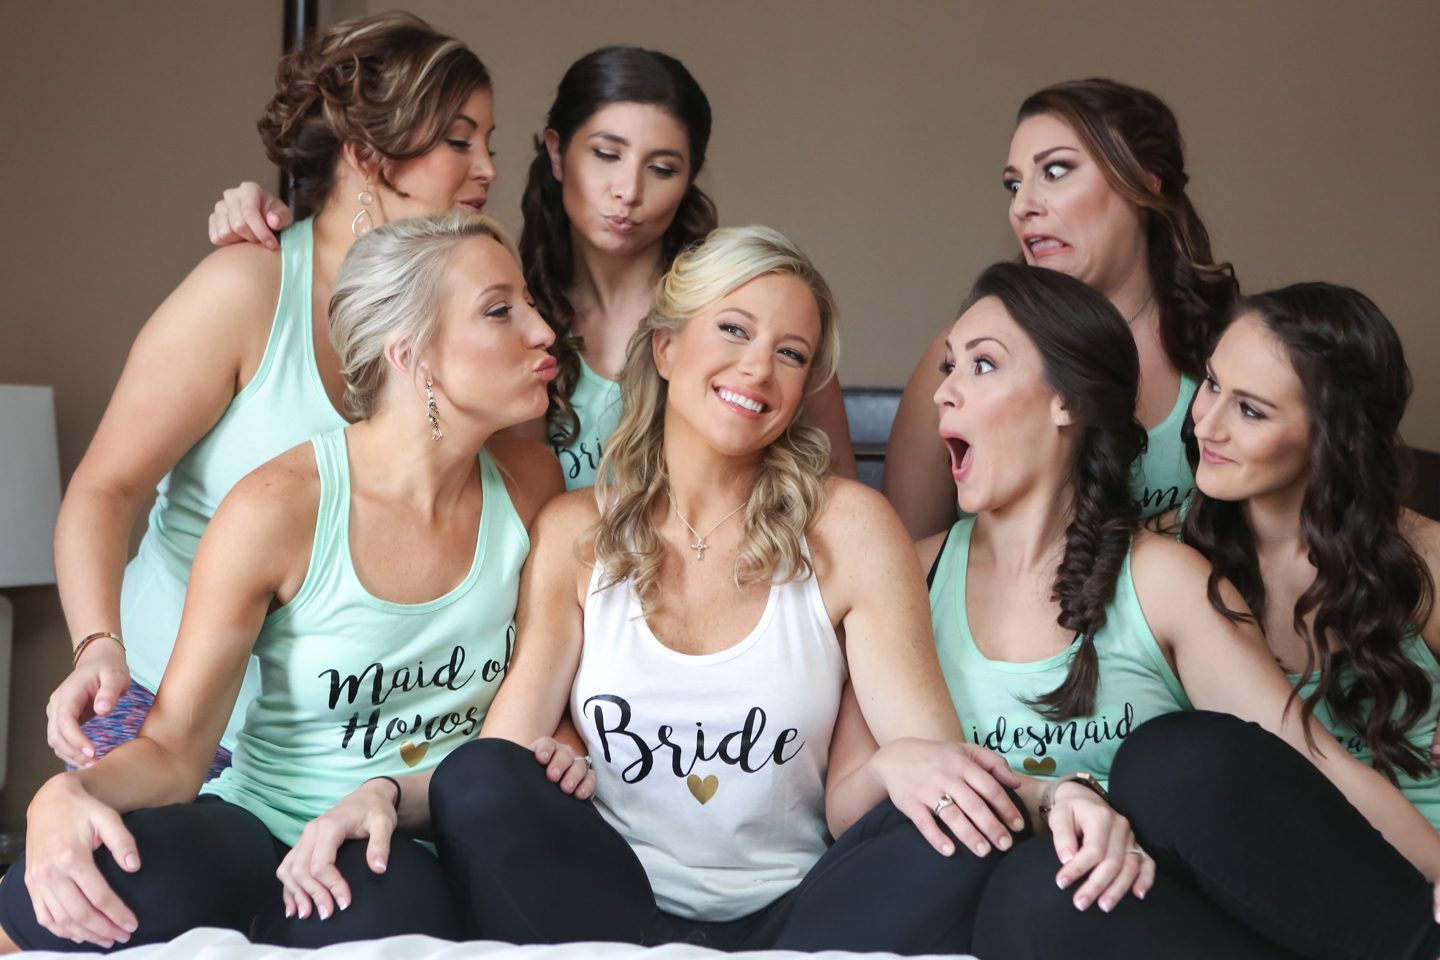 www.livehappystudio.com-wedding-photographer-orlando-fun-candid-portrait-bridesmaids-custom-shirts-43.jpg